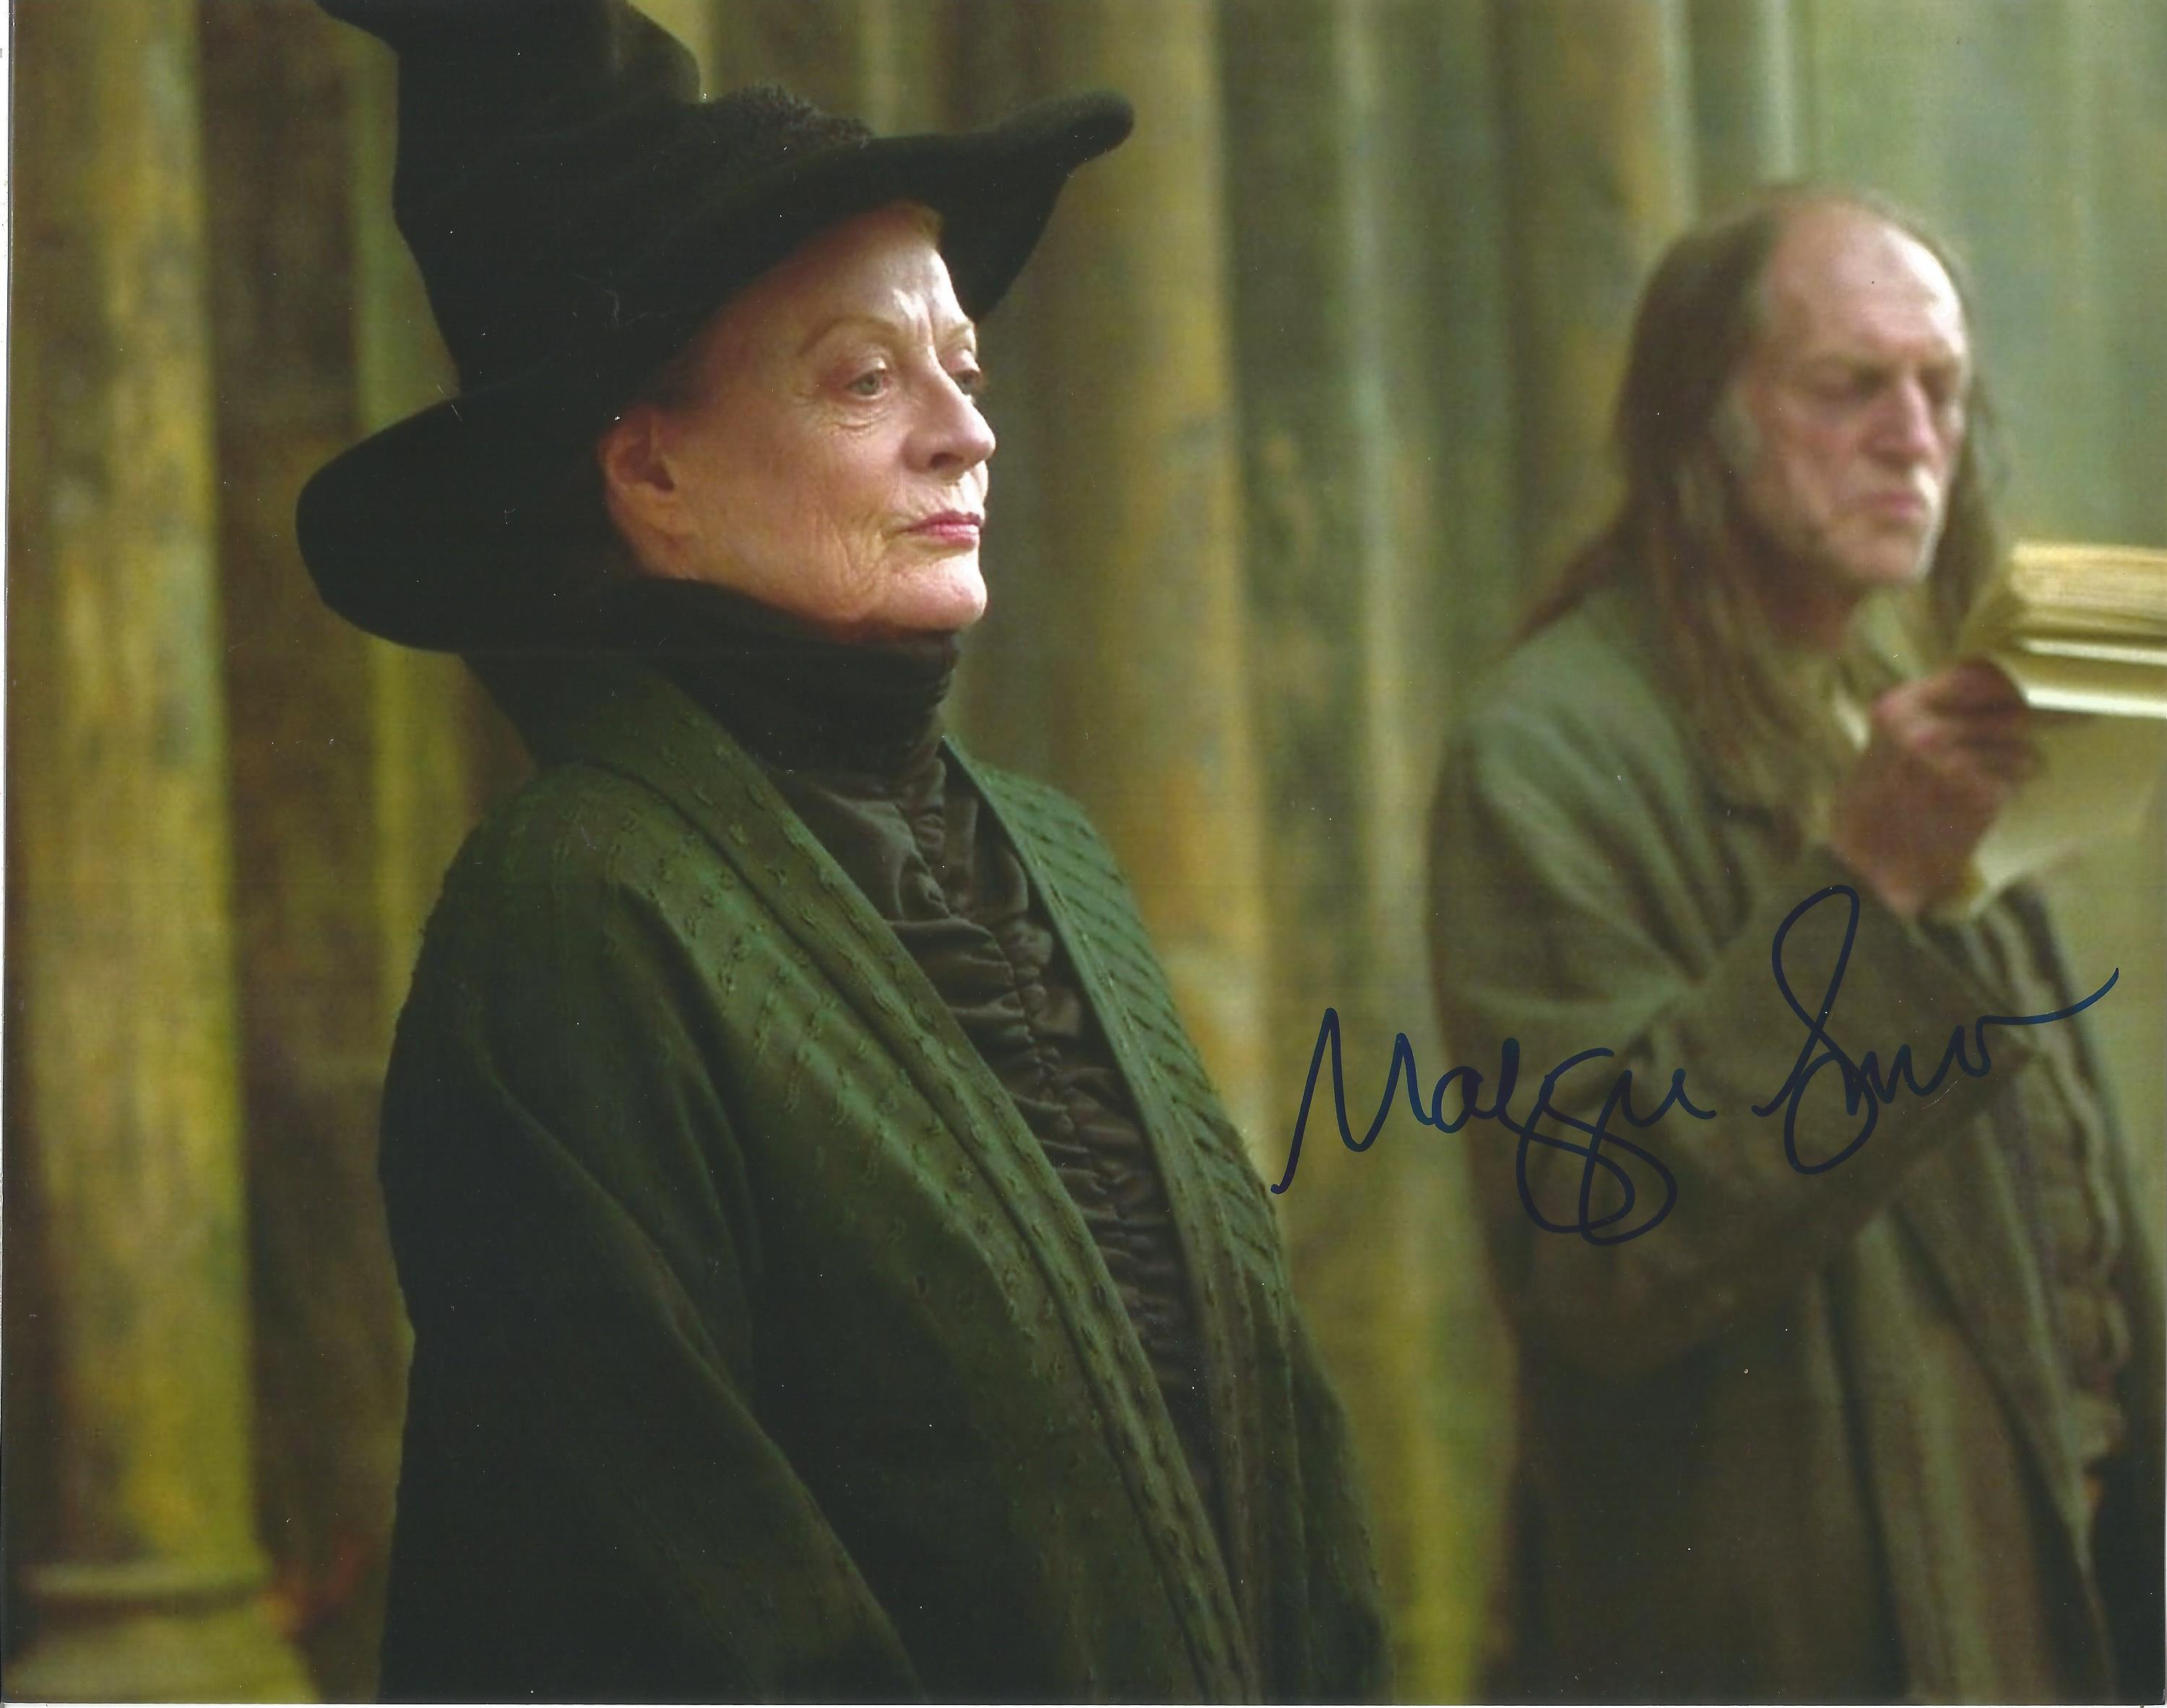 Actress Maggie Smith signed 10x8 colour photo in character as Professor McGonagall in the Harry